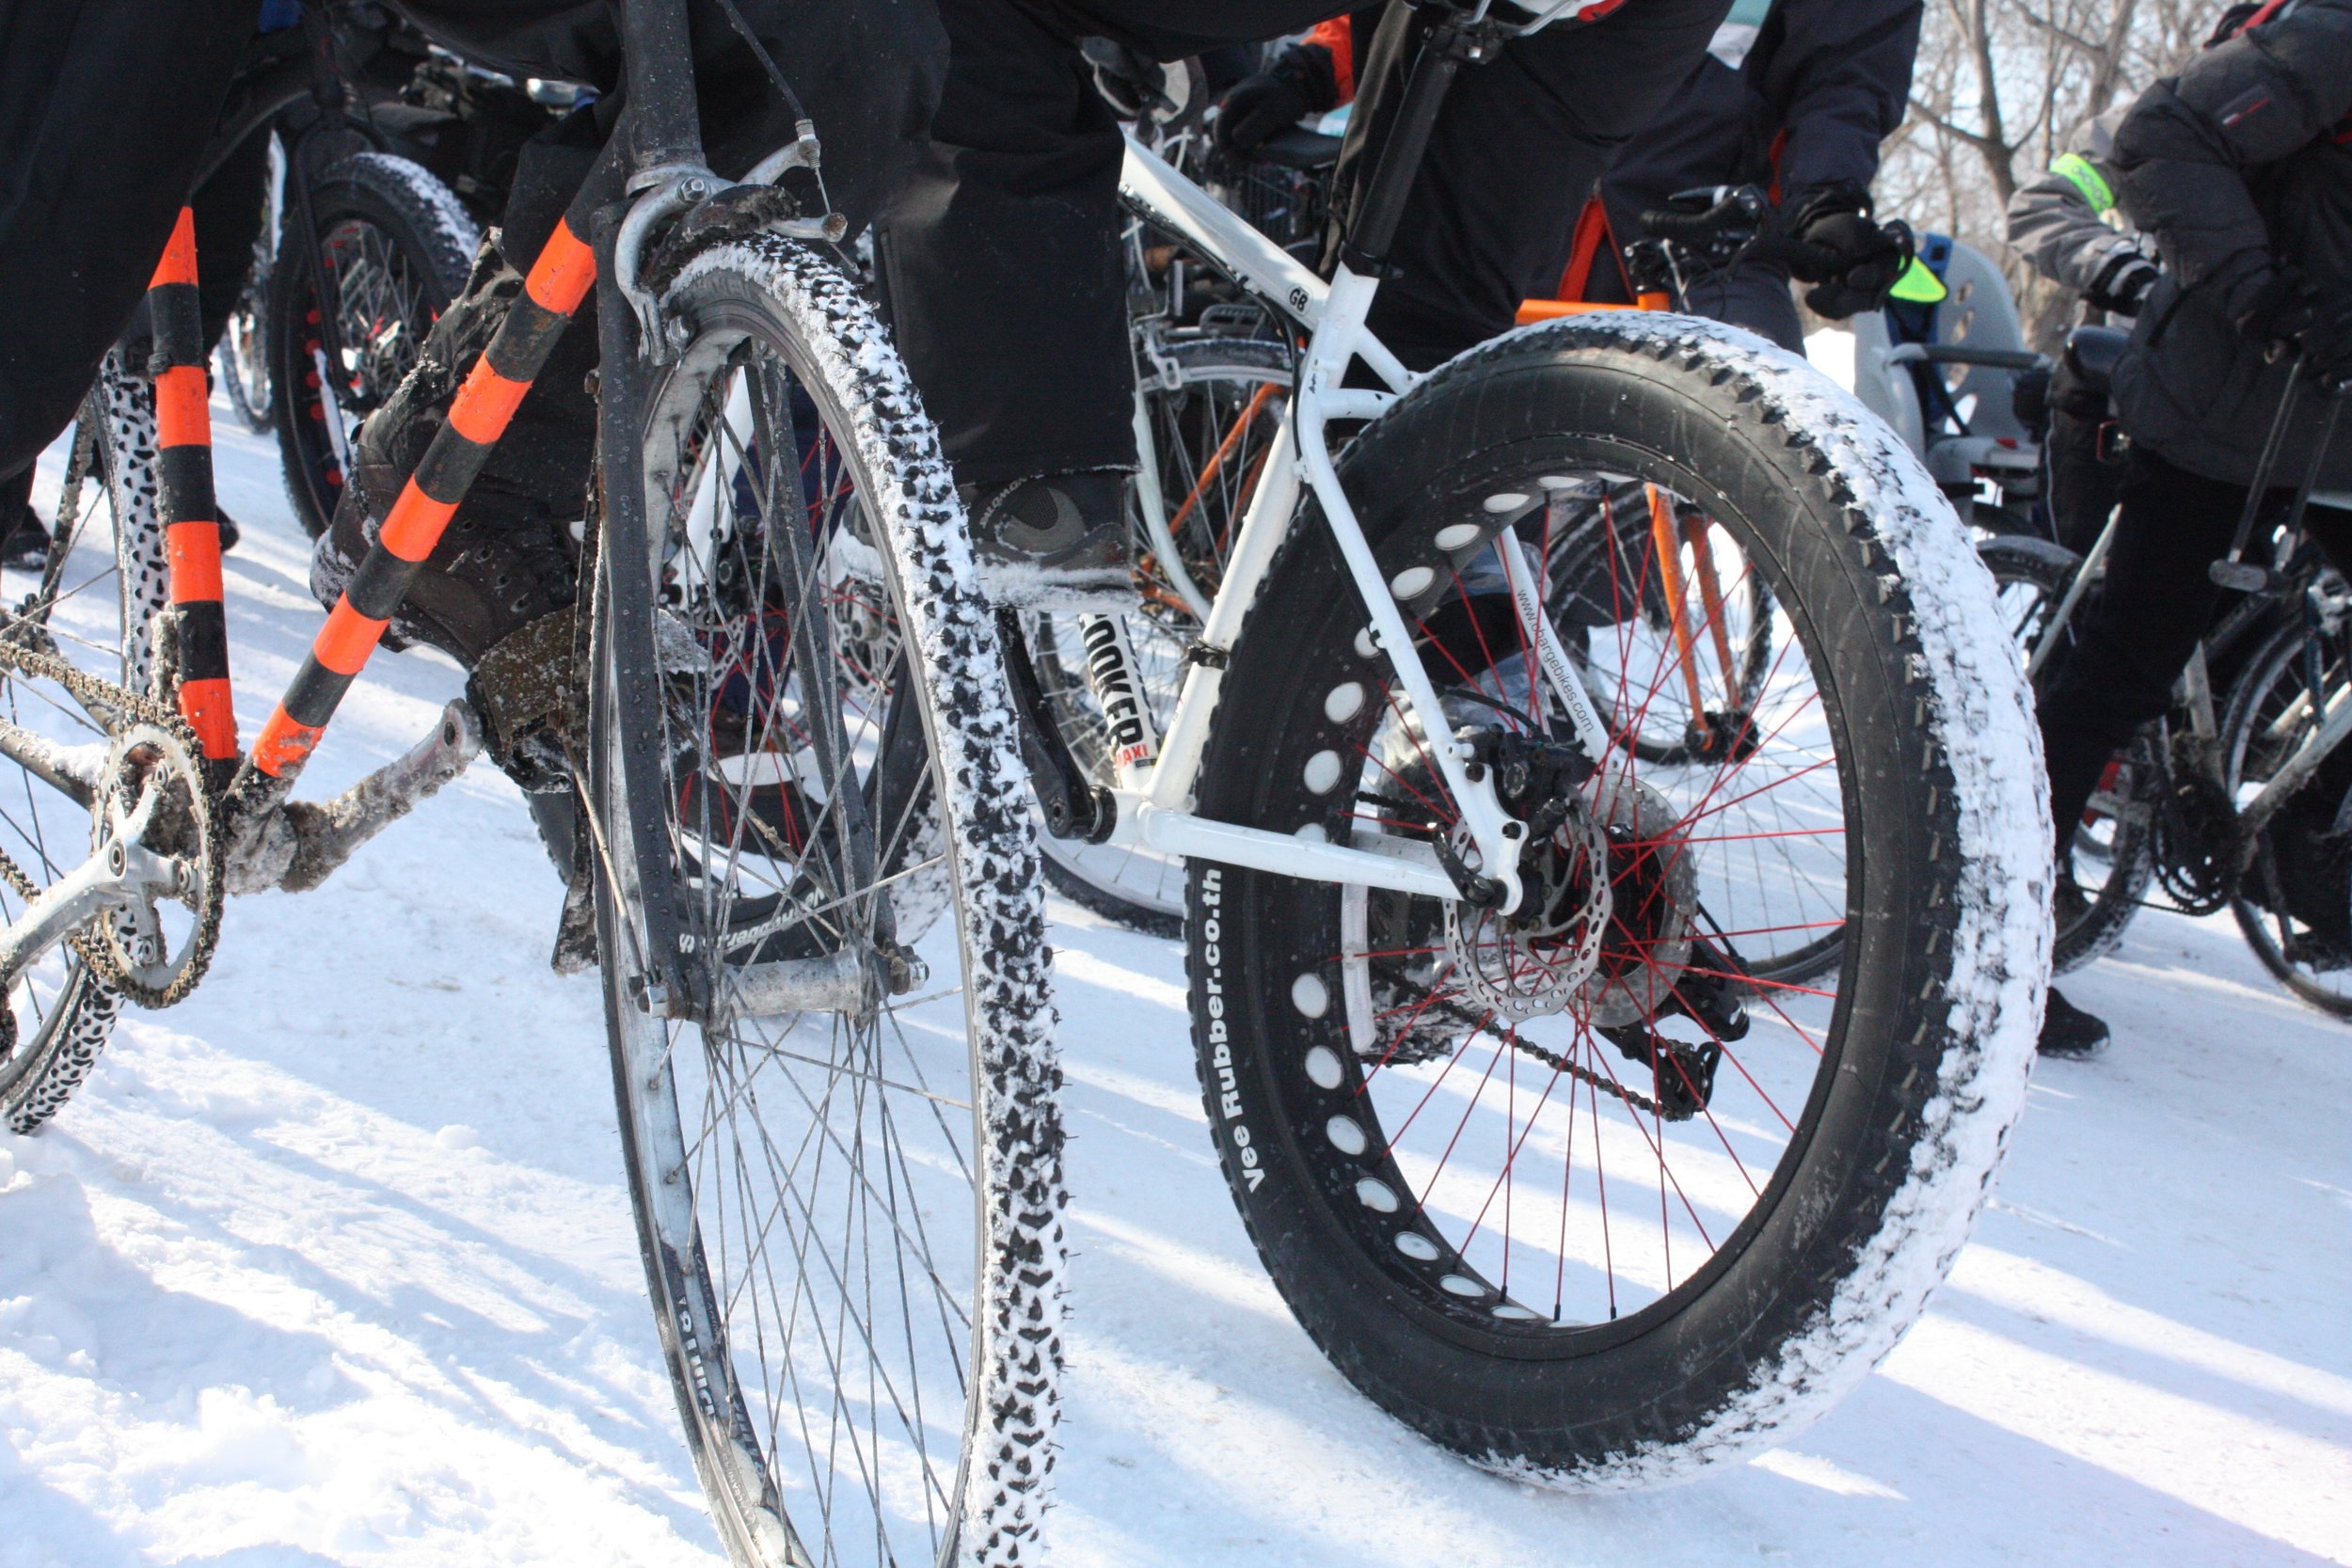 Snow cakes into tire treads at the Velo Sous Zero event in Parc Lafontaine on February 15, 2015. The annual bike circuit brings winter cyclists together for a 14-km ride through Montreal in sub-zero temperatures.